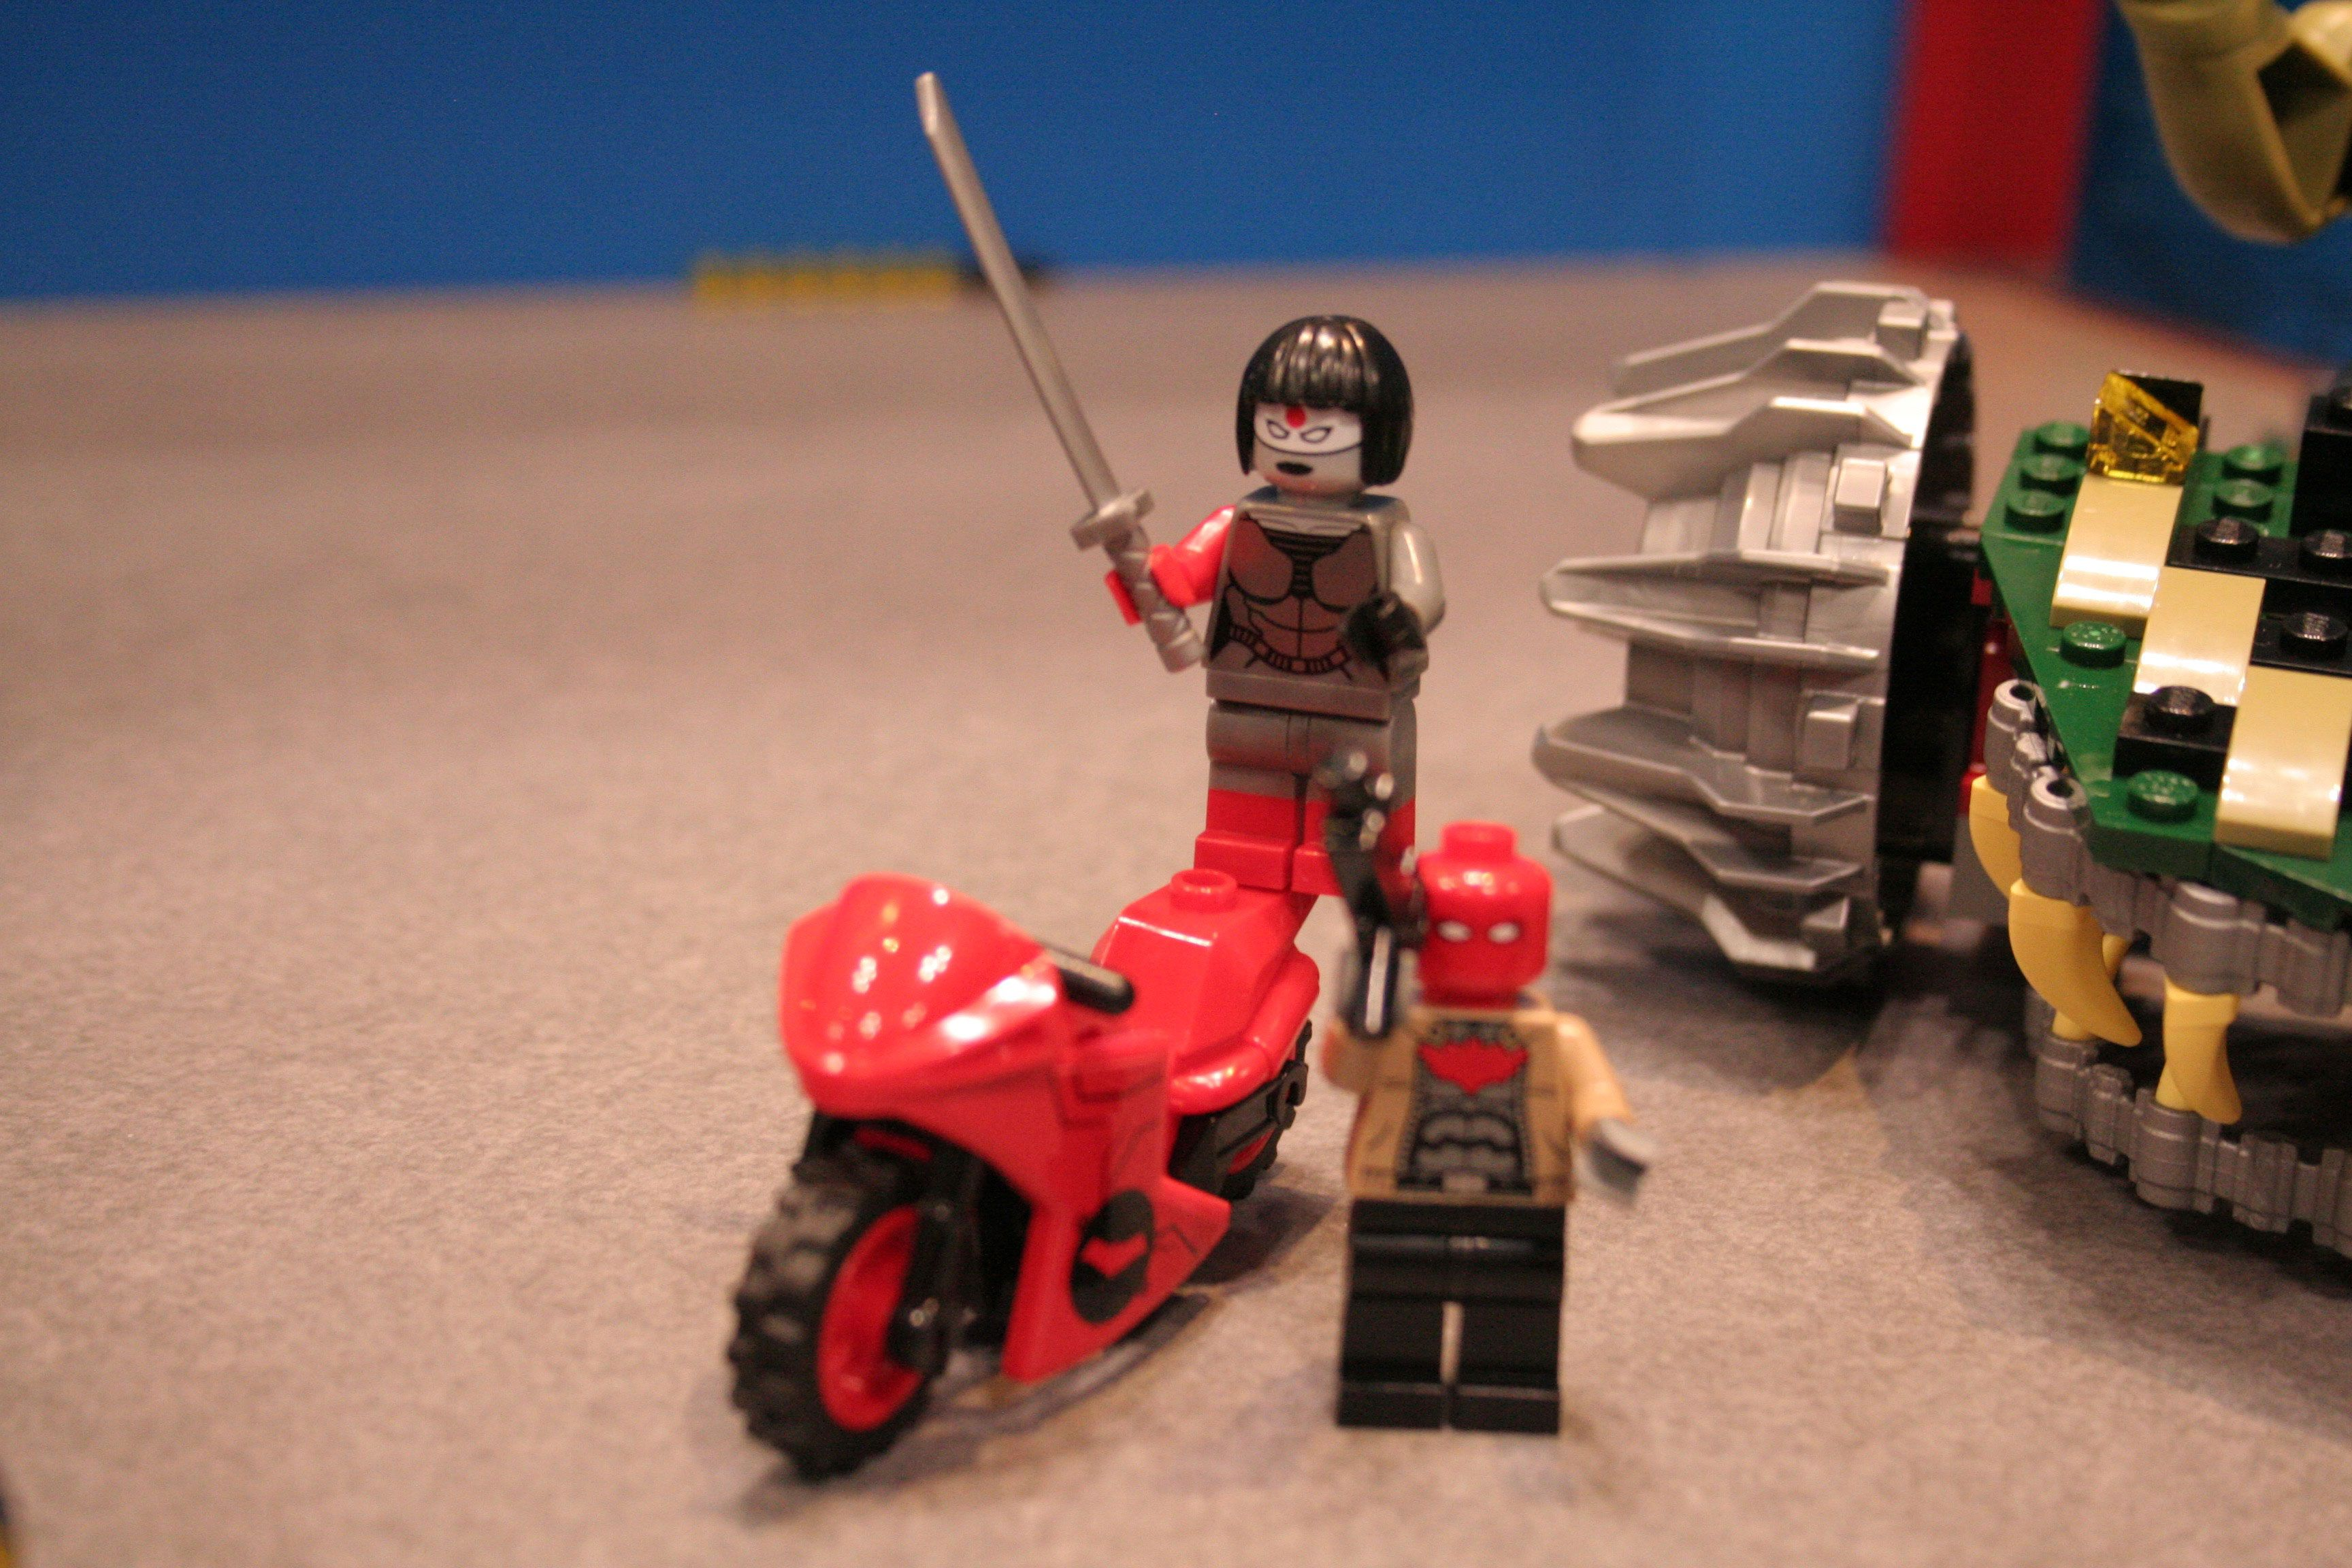 Batman vs Superman, Captain America Lego Images from Toy ...